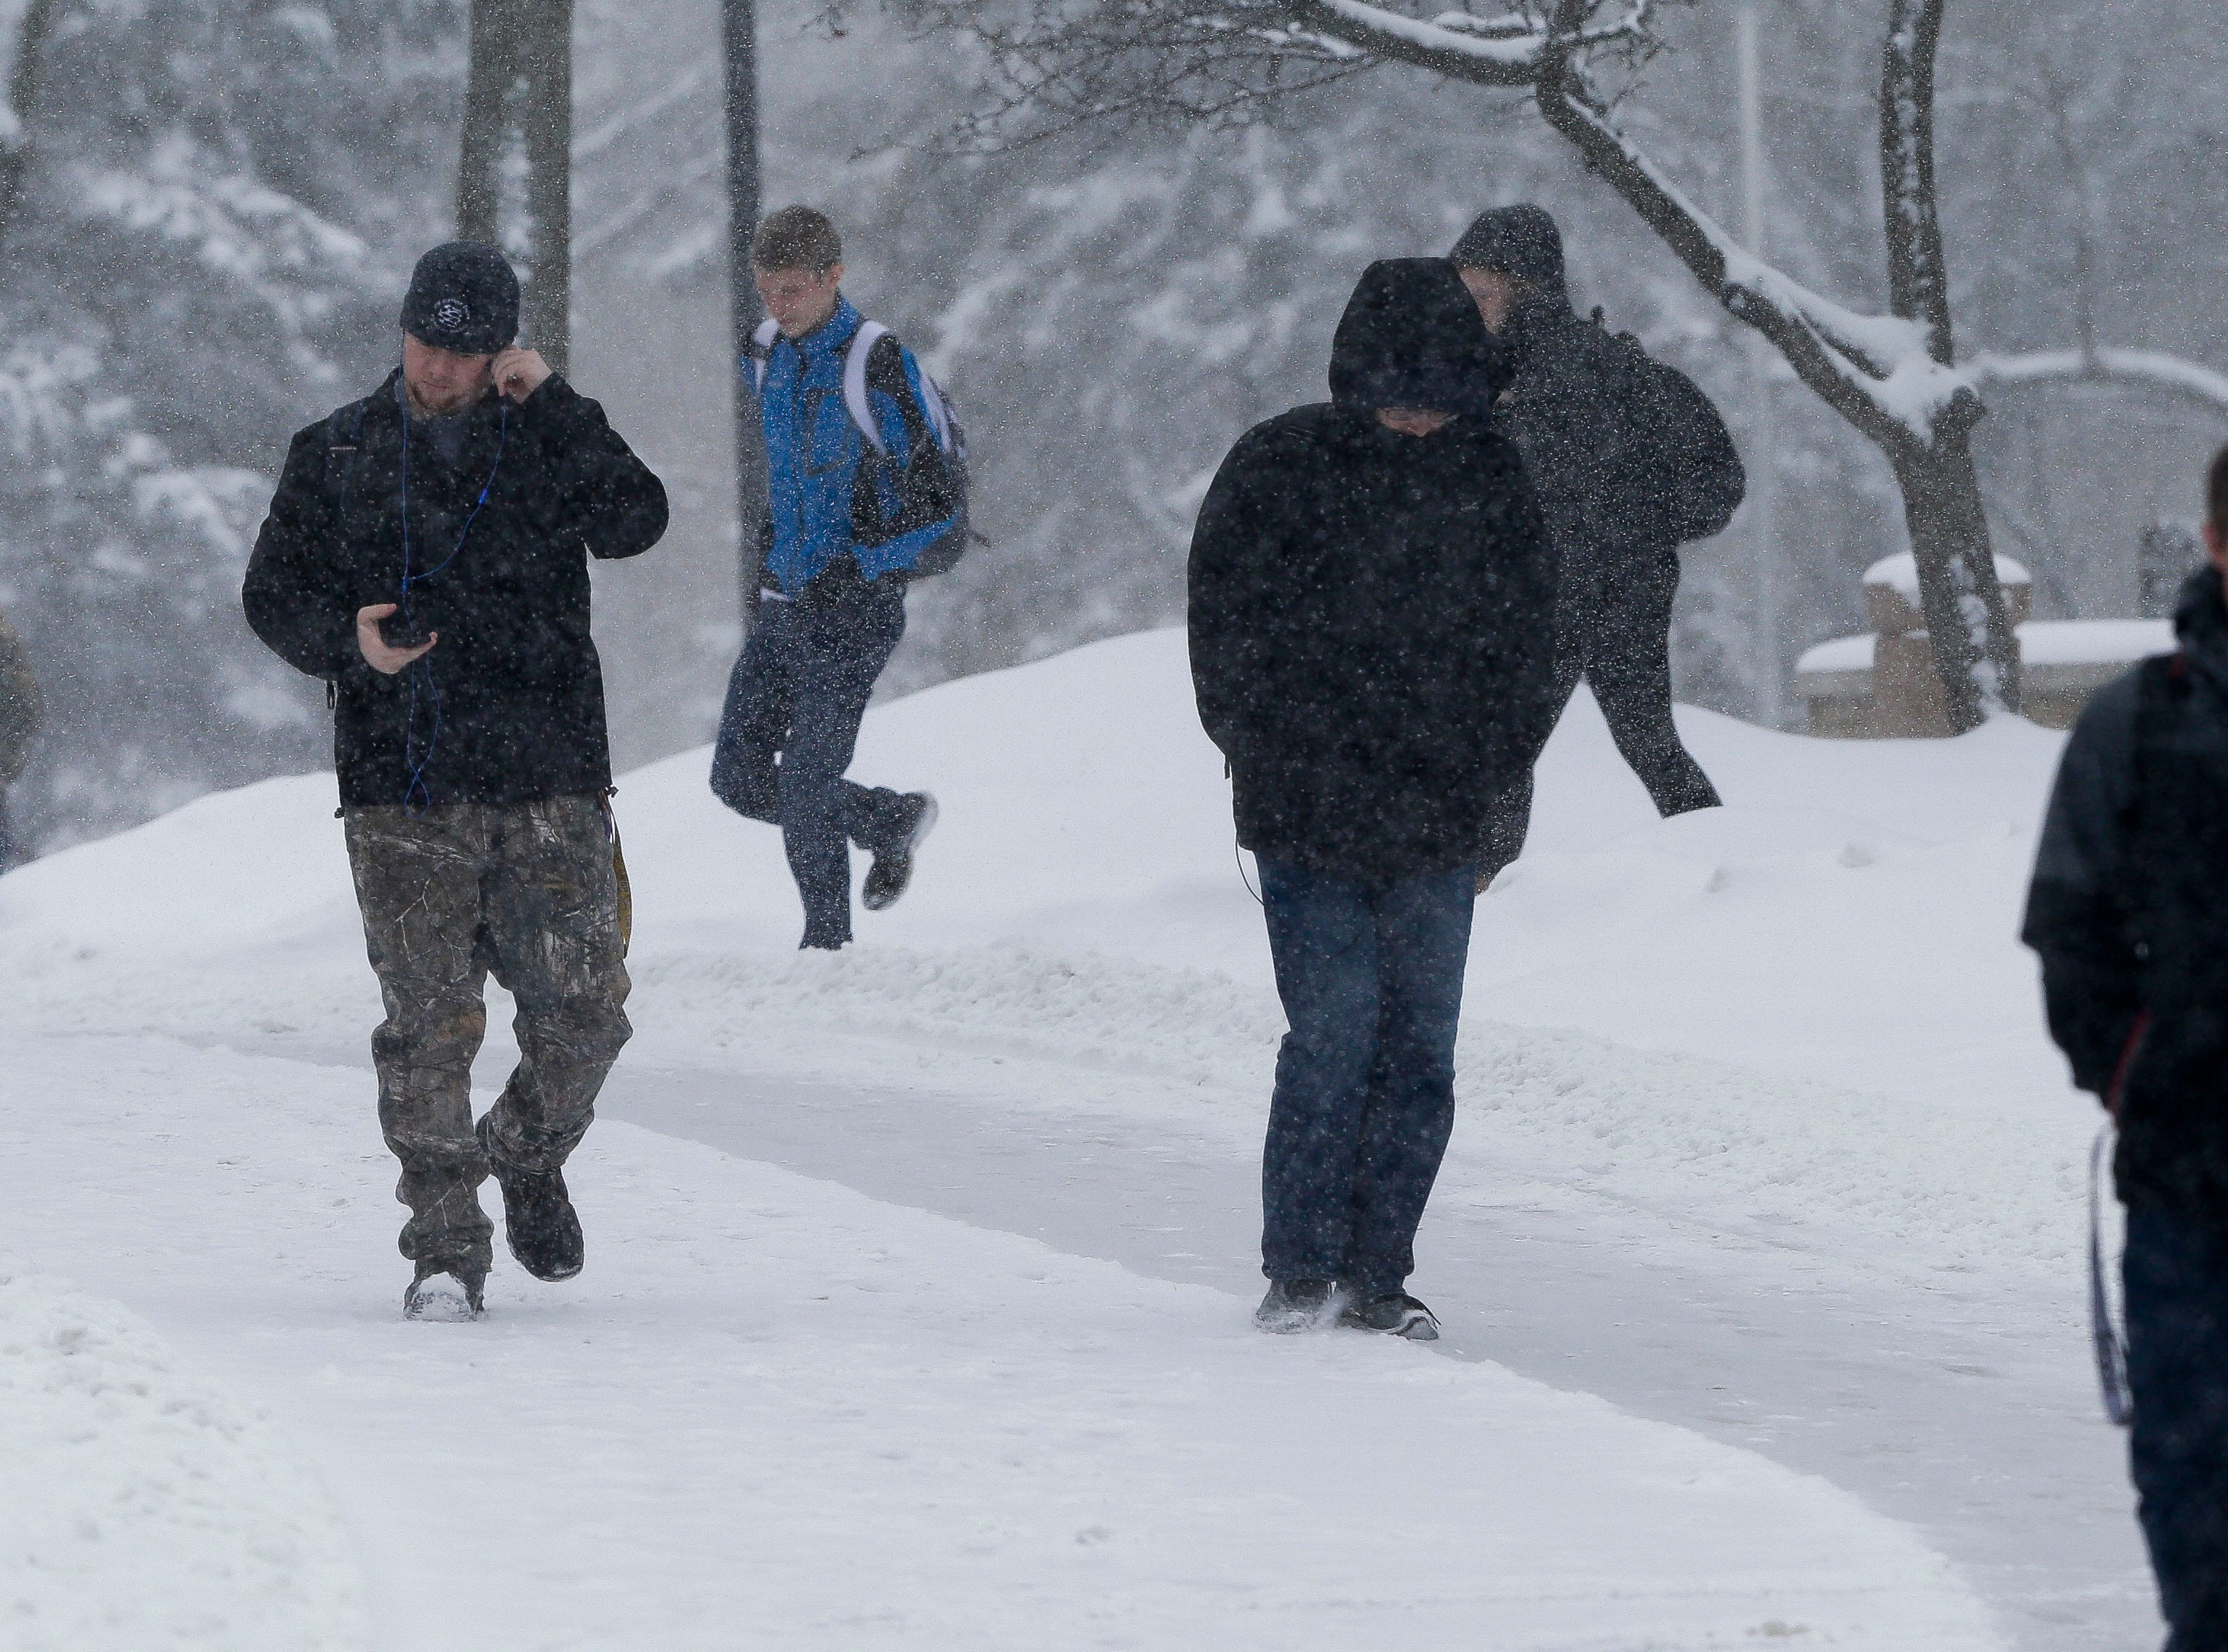 UWSP students walk between classes on Thursday, February 7, 2019, in Stevens Point, Wis. A winter storm is expected to drop 5-8 inches of snow in the area by the time it clears Thursday evening.